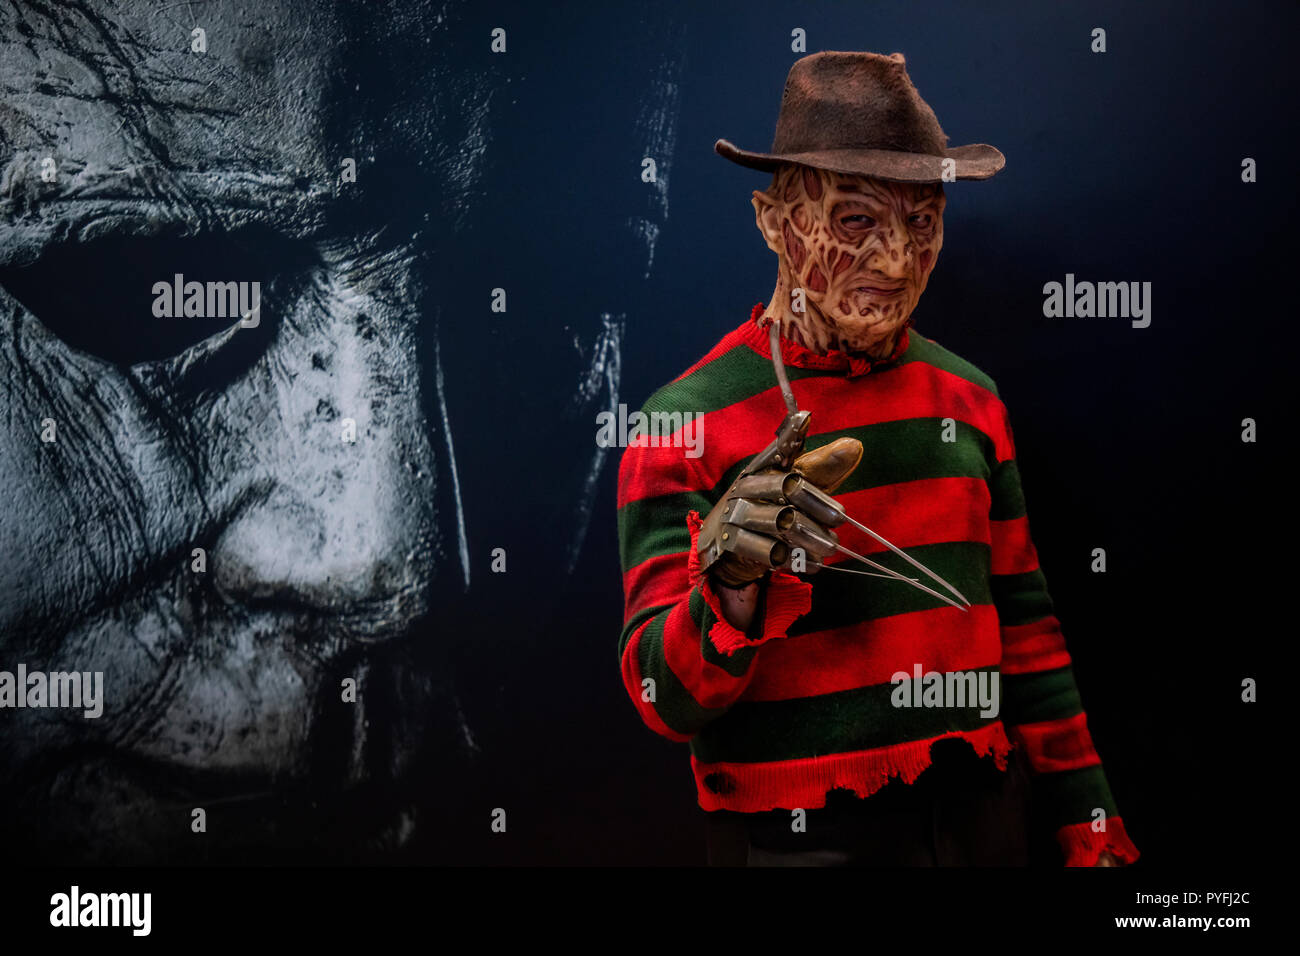 A man in a Freddy Kruger character costume during the Halloween movie presentation at Comic Con Russia exhibition at Crocus Expo in Moscow, Russia - Stock Image